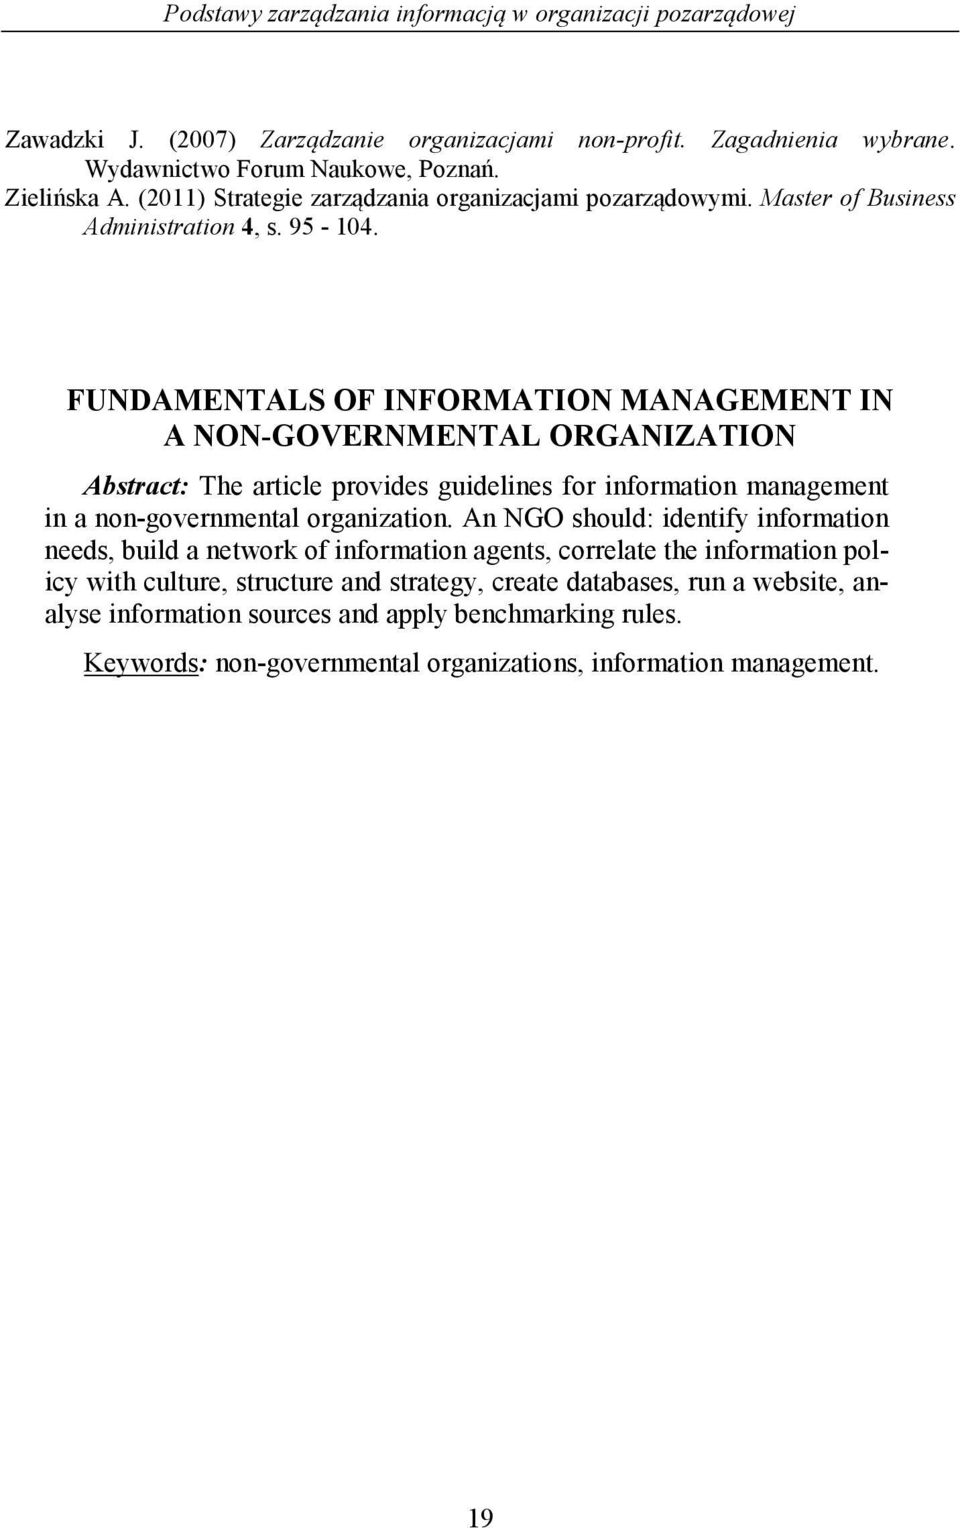 FUNDAMENTALS OF INFORMATION MANAGEMENT IN A NON-GOVERNMENTAL ORGANIZATION Abstract: The article provides guidelines for information management in a non-governmental organization.